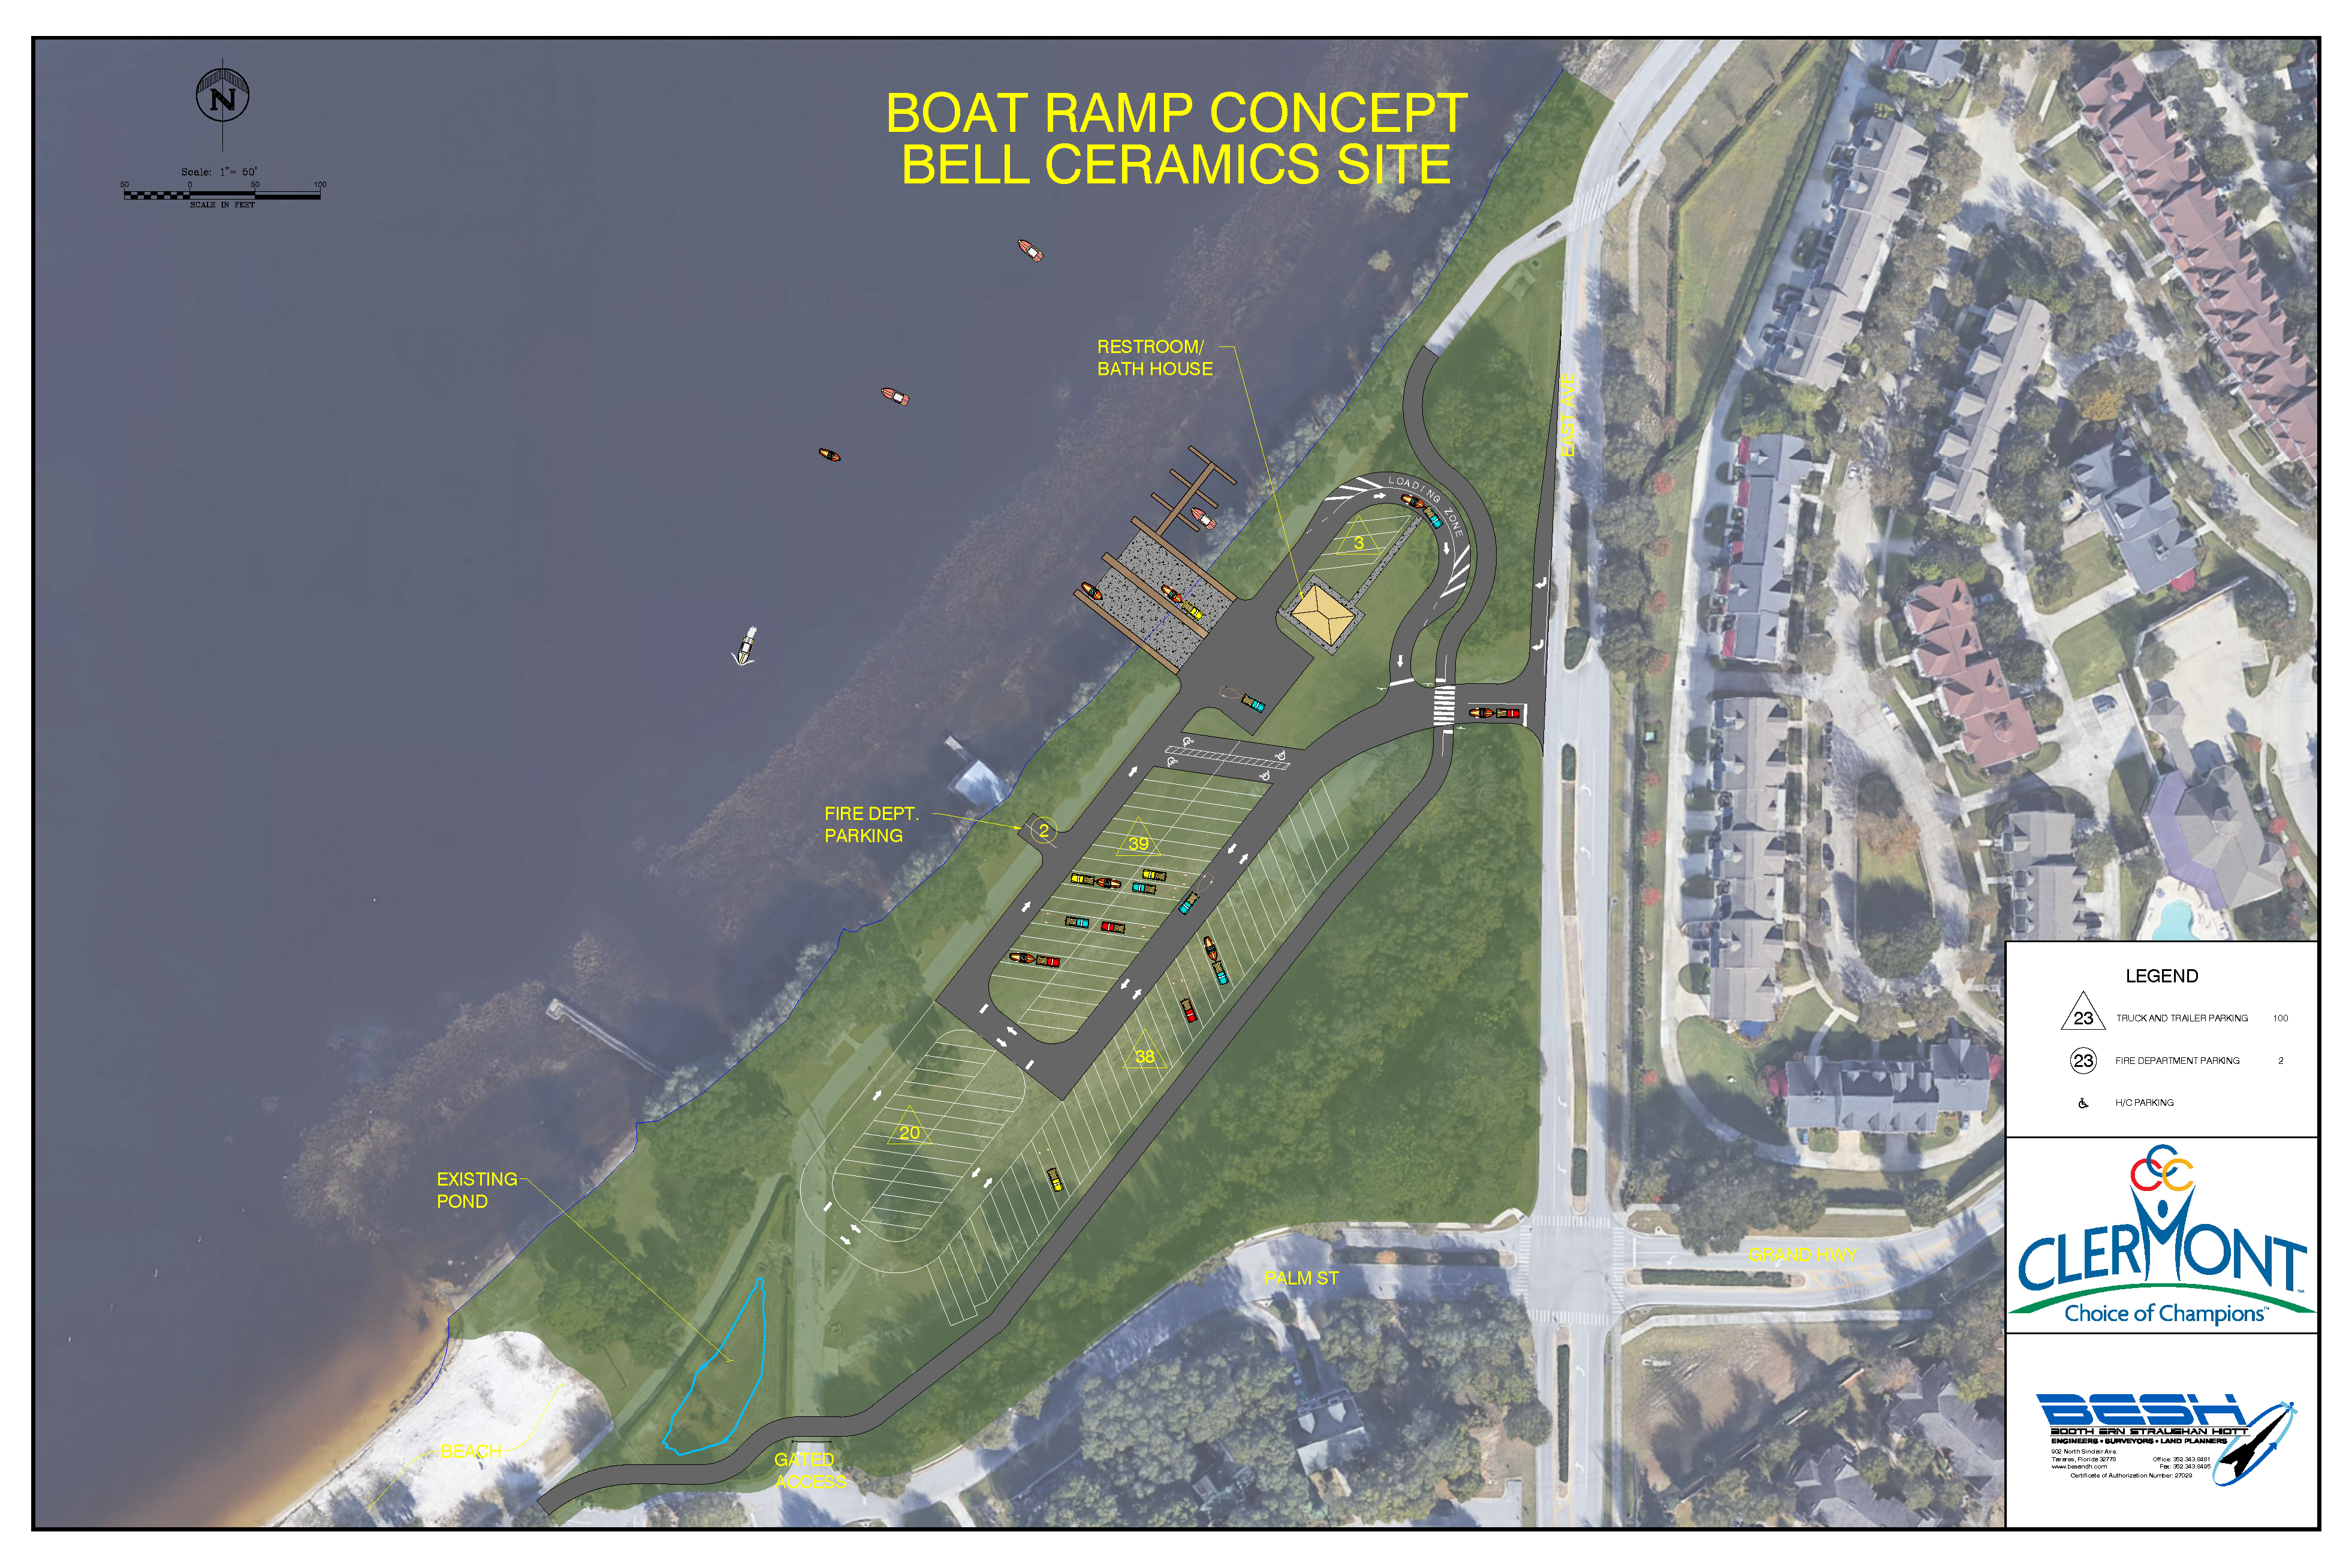 Boat Ramp Concept on Bell Ceramics Site showing parking spots, slips, rerouted trail